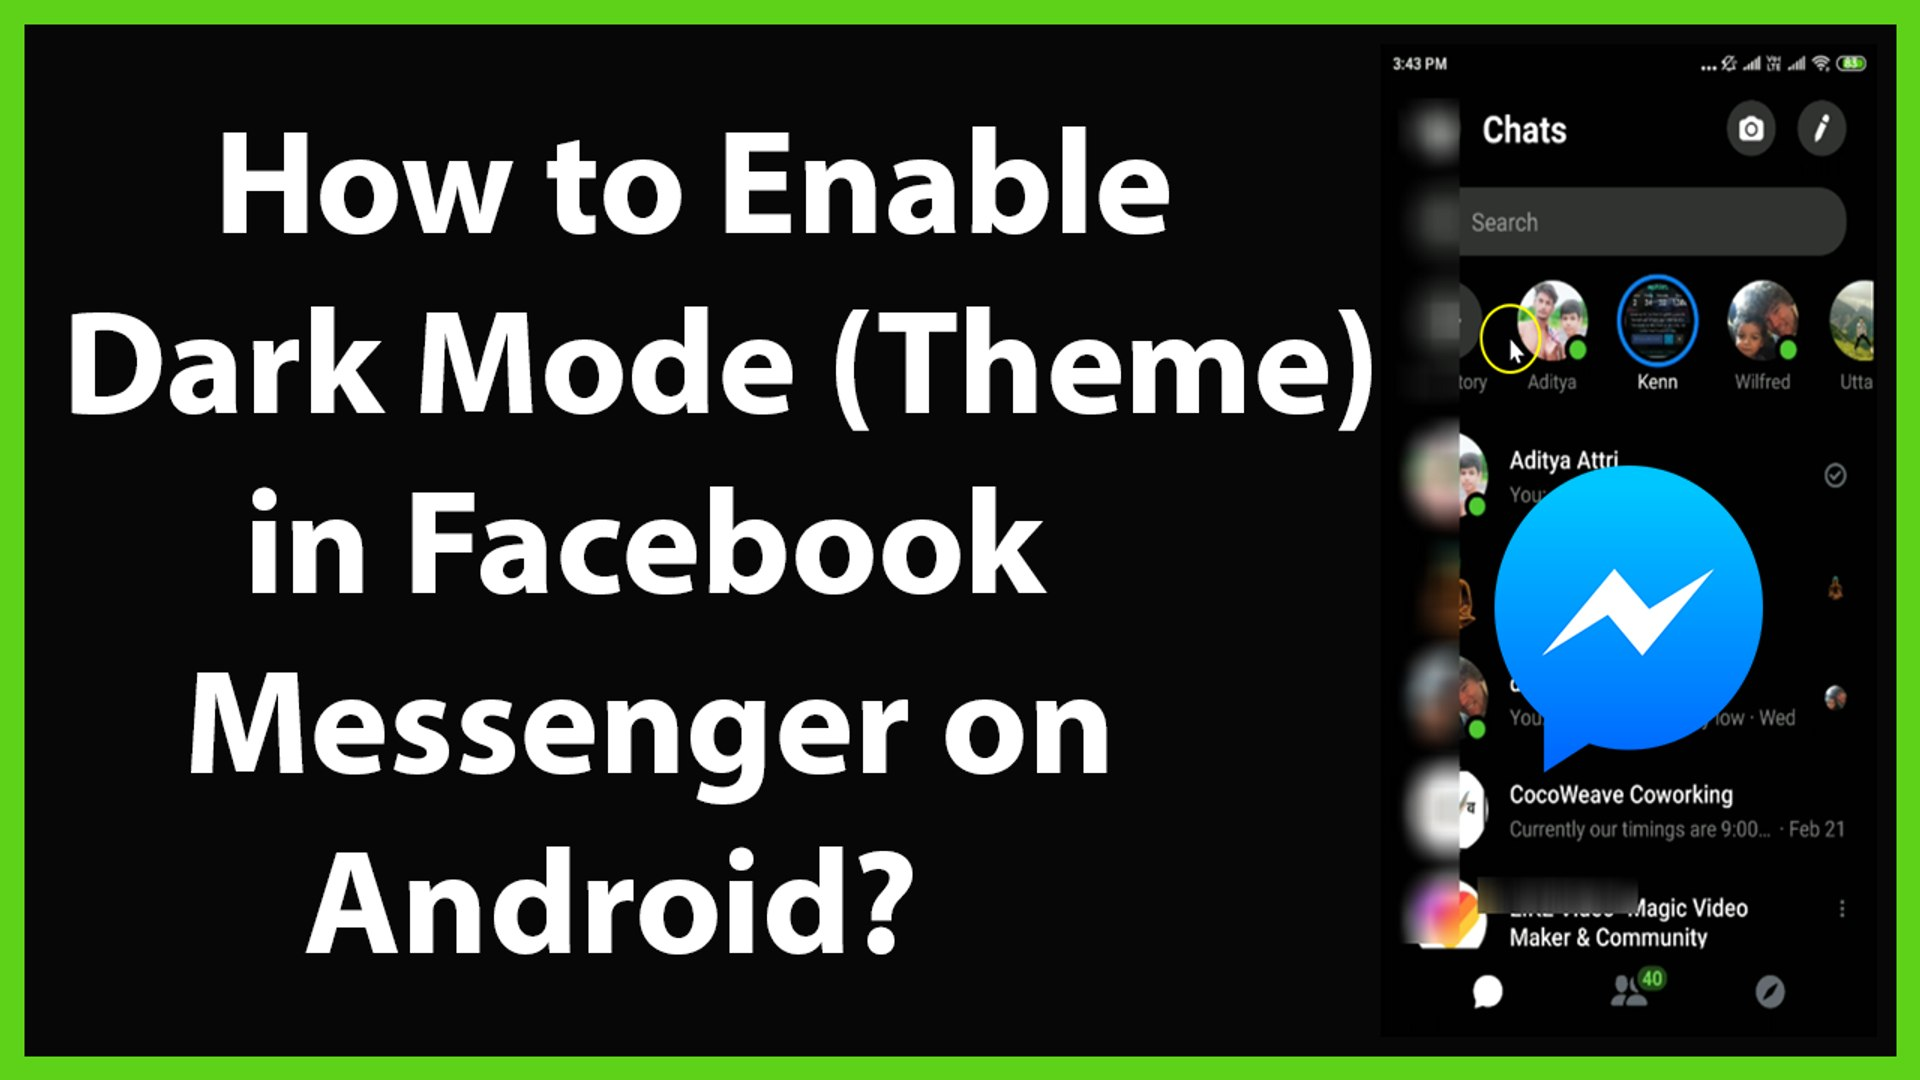 How to Enable Dark Mode(Theme) on Facebook Messenger on Android?